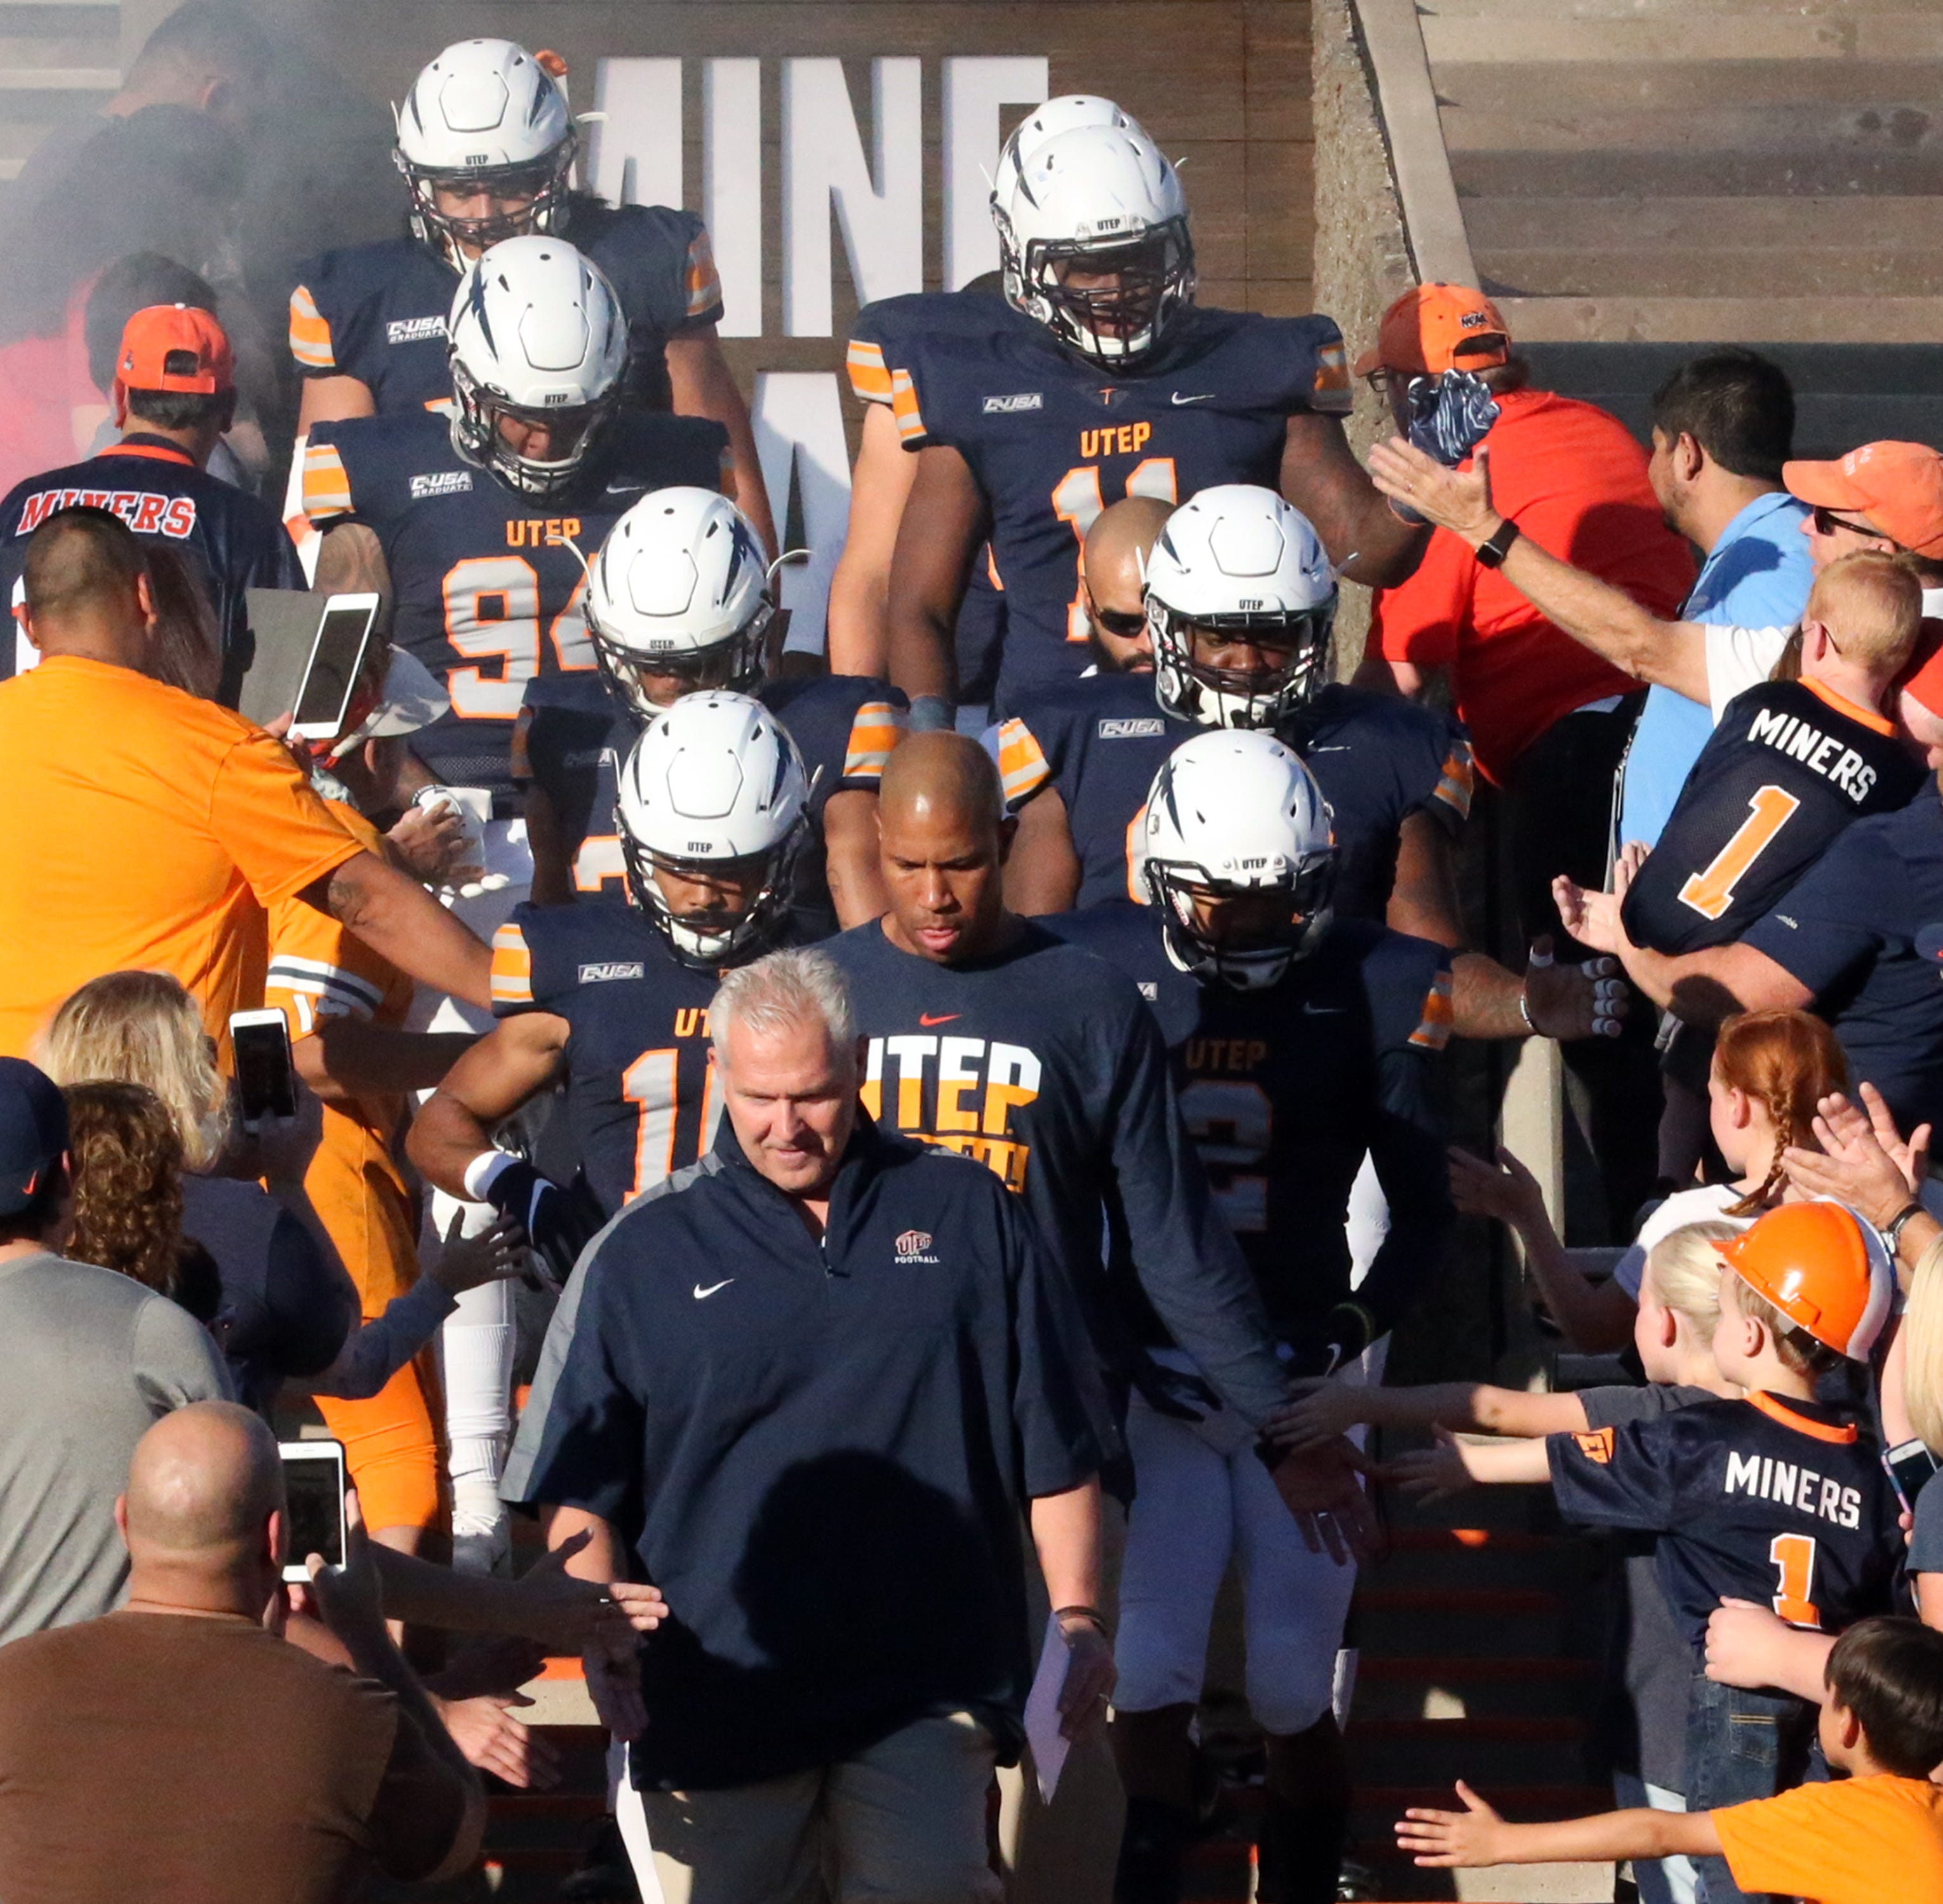 UTEP football team's struggles against Western Kentucky raise questions